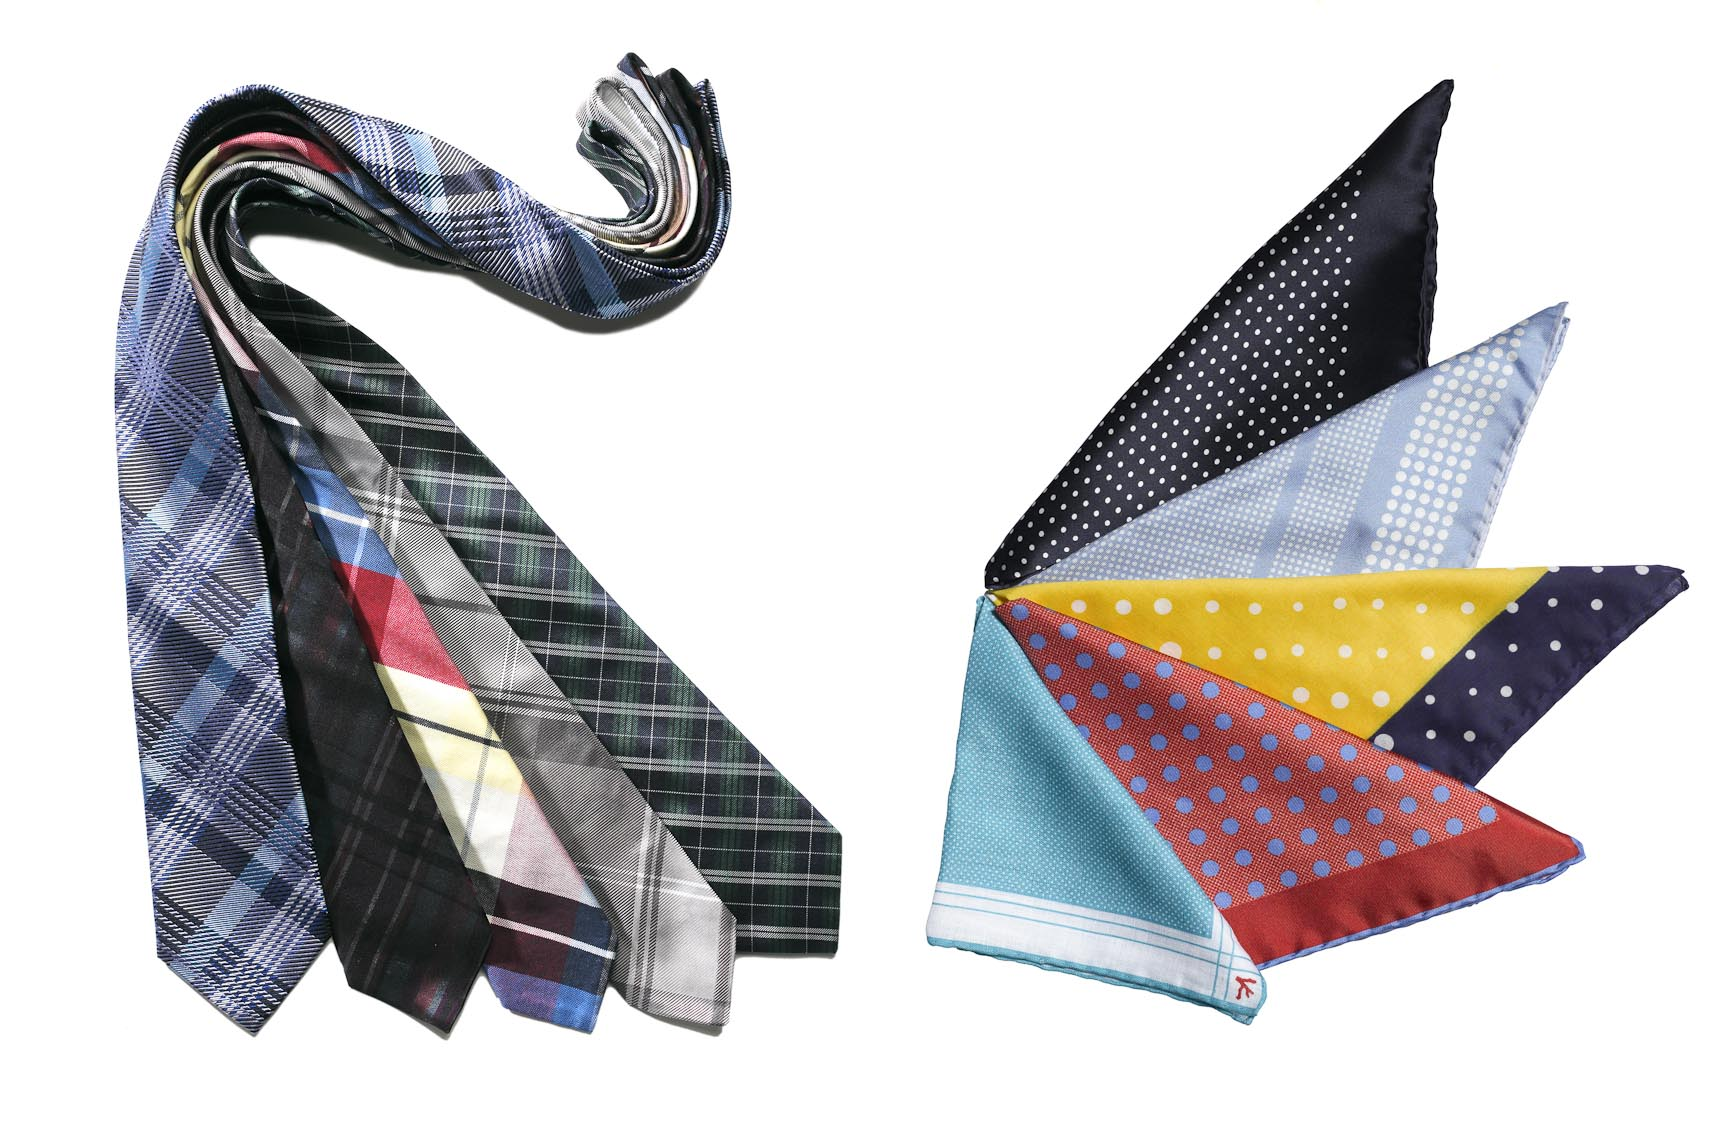 Accessories Still Life, Neckties and Pocket Squares on White